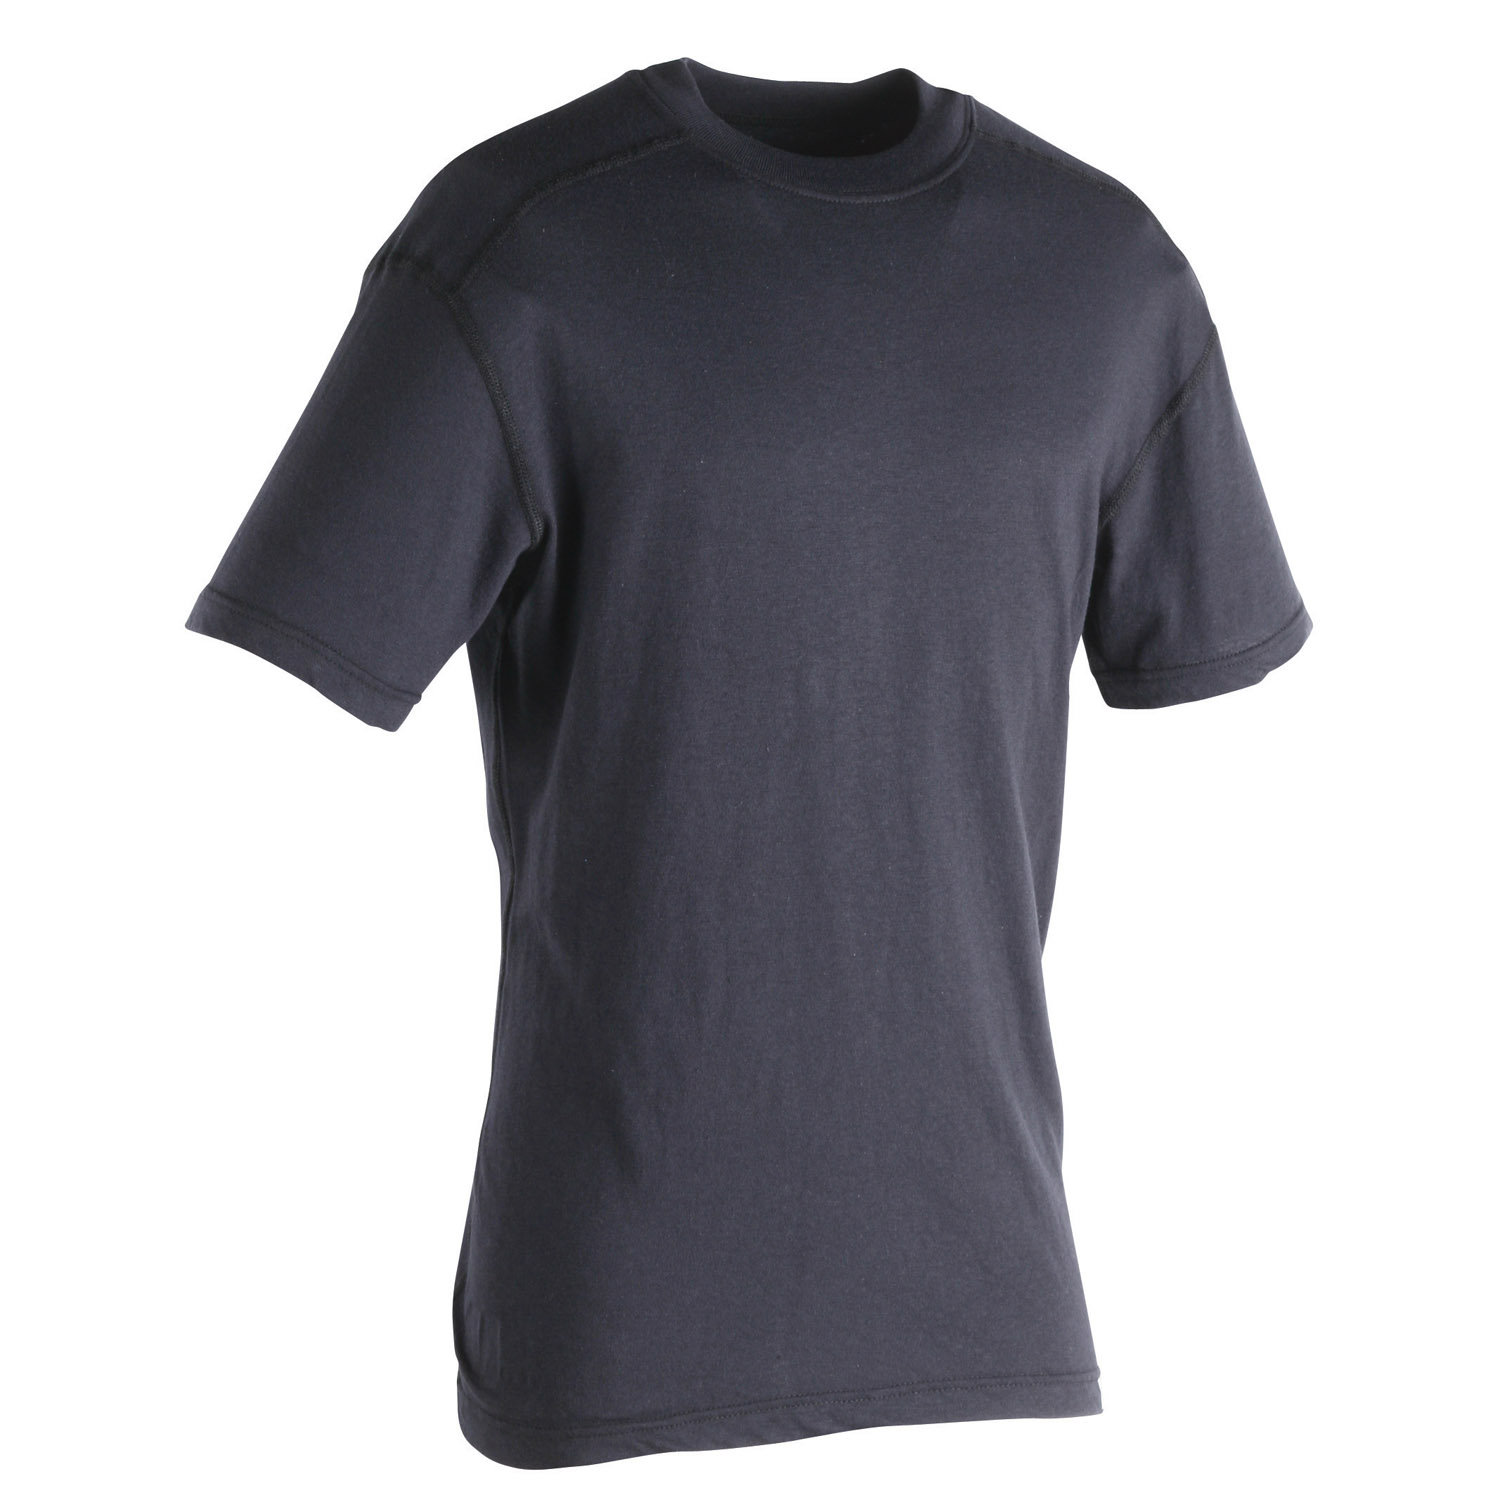 Tru-Spec 24/7 Series Comfort T Shirts (3 Pack)